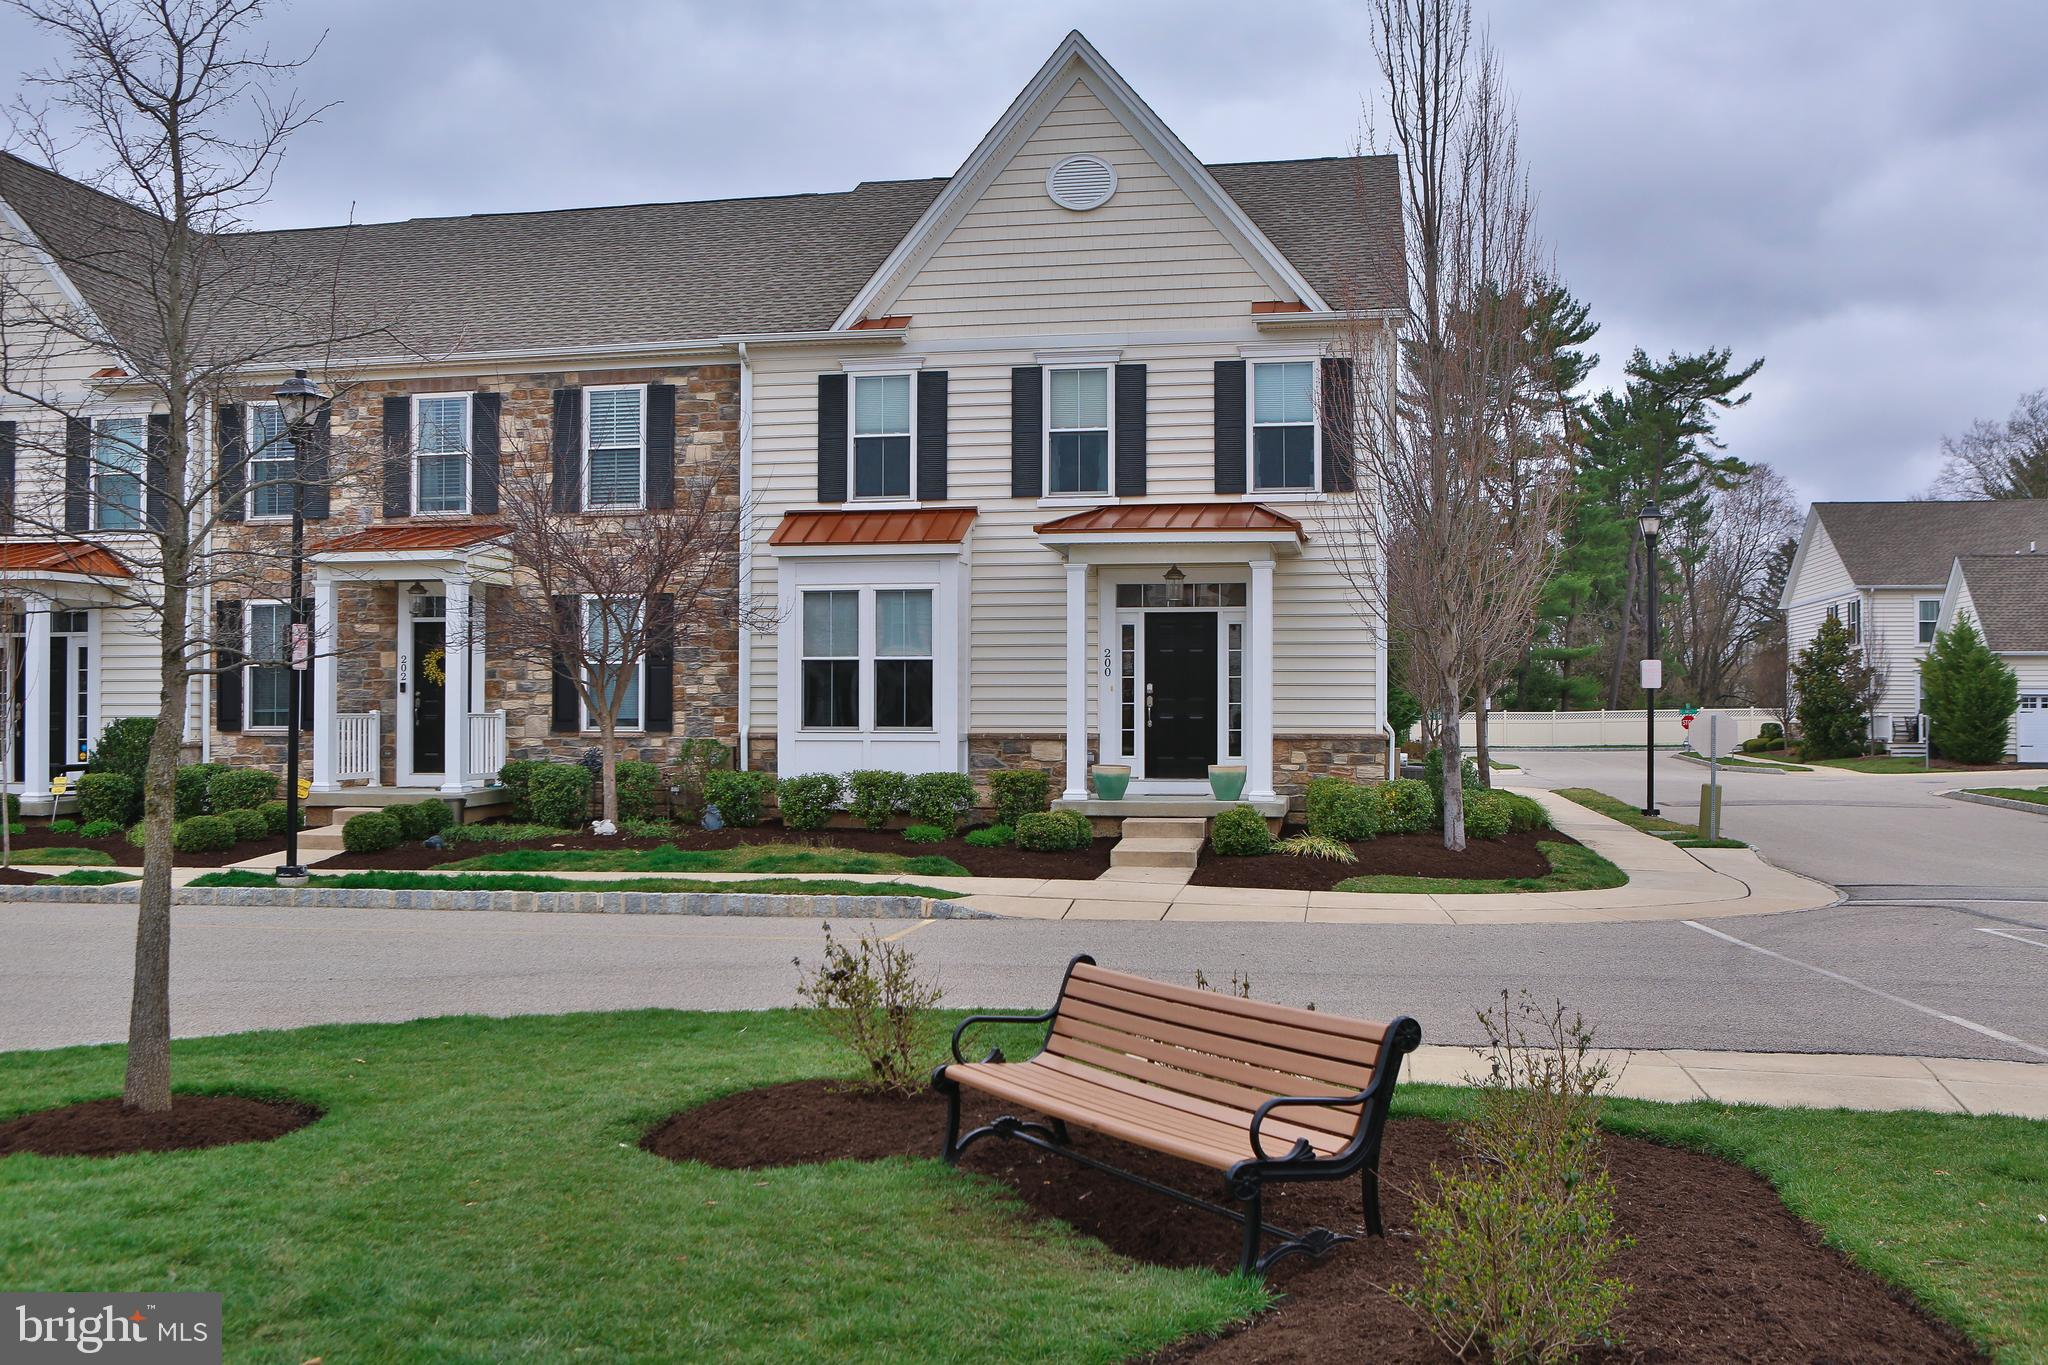 200 RITTENHOUSE SQUARE, PLYMOUTH MEETING, PA 19462